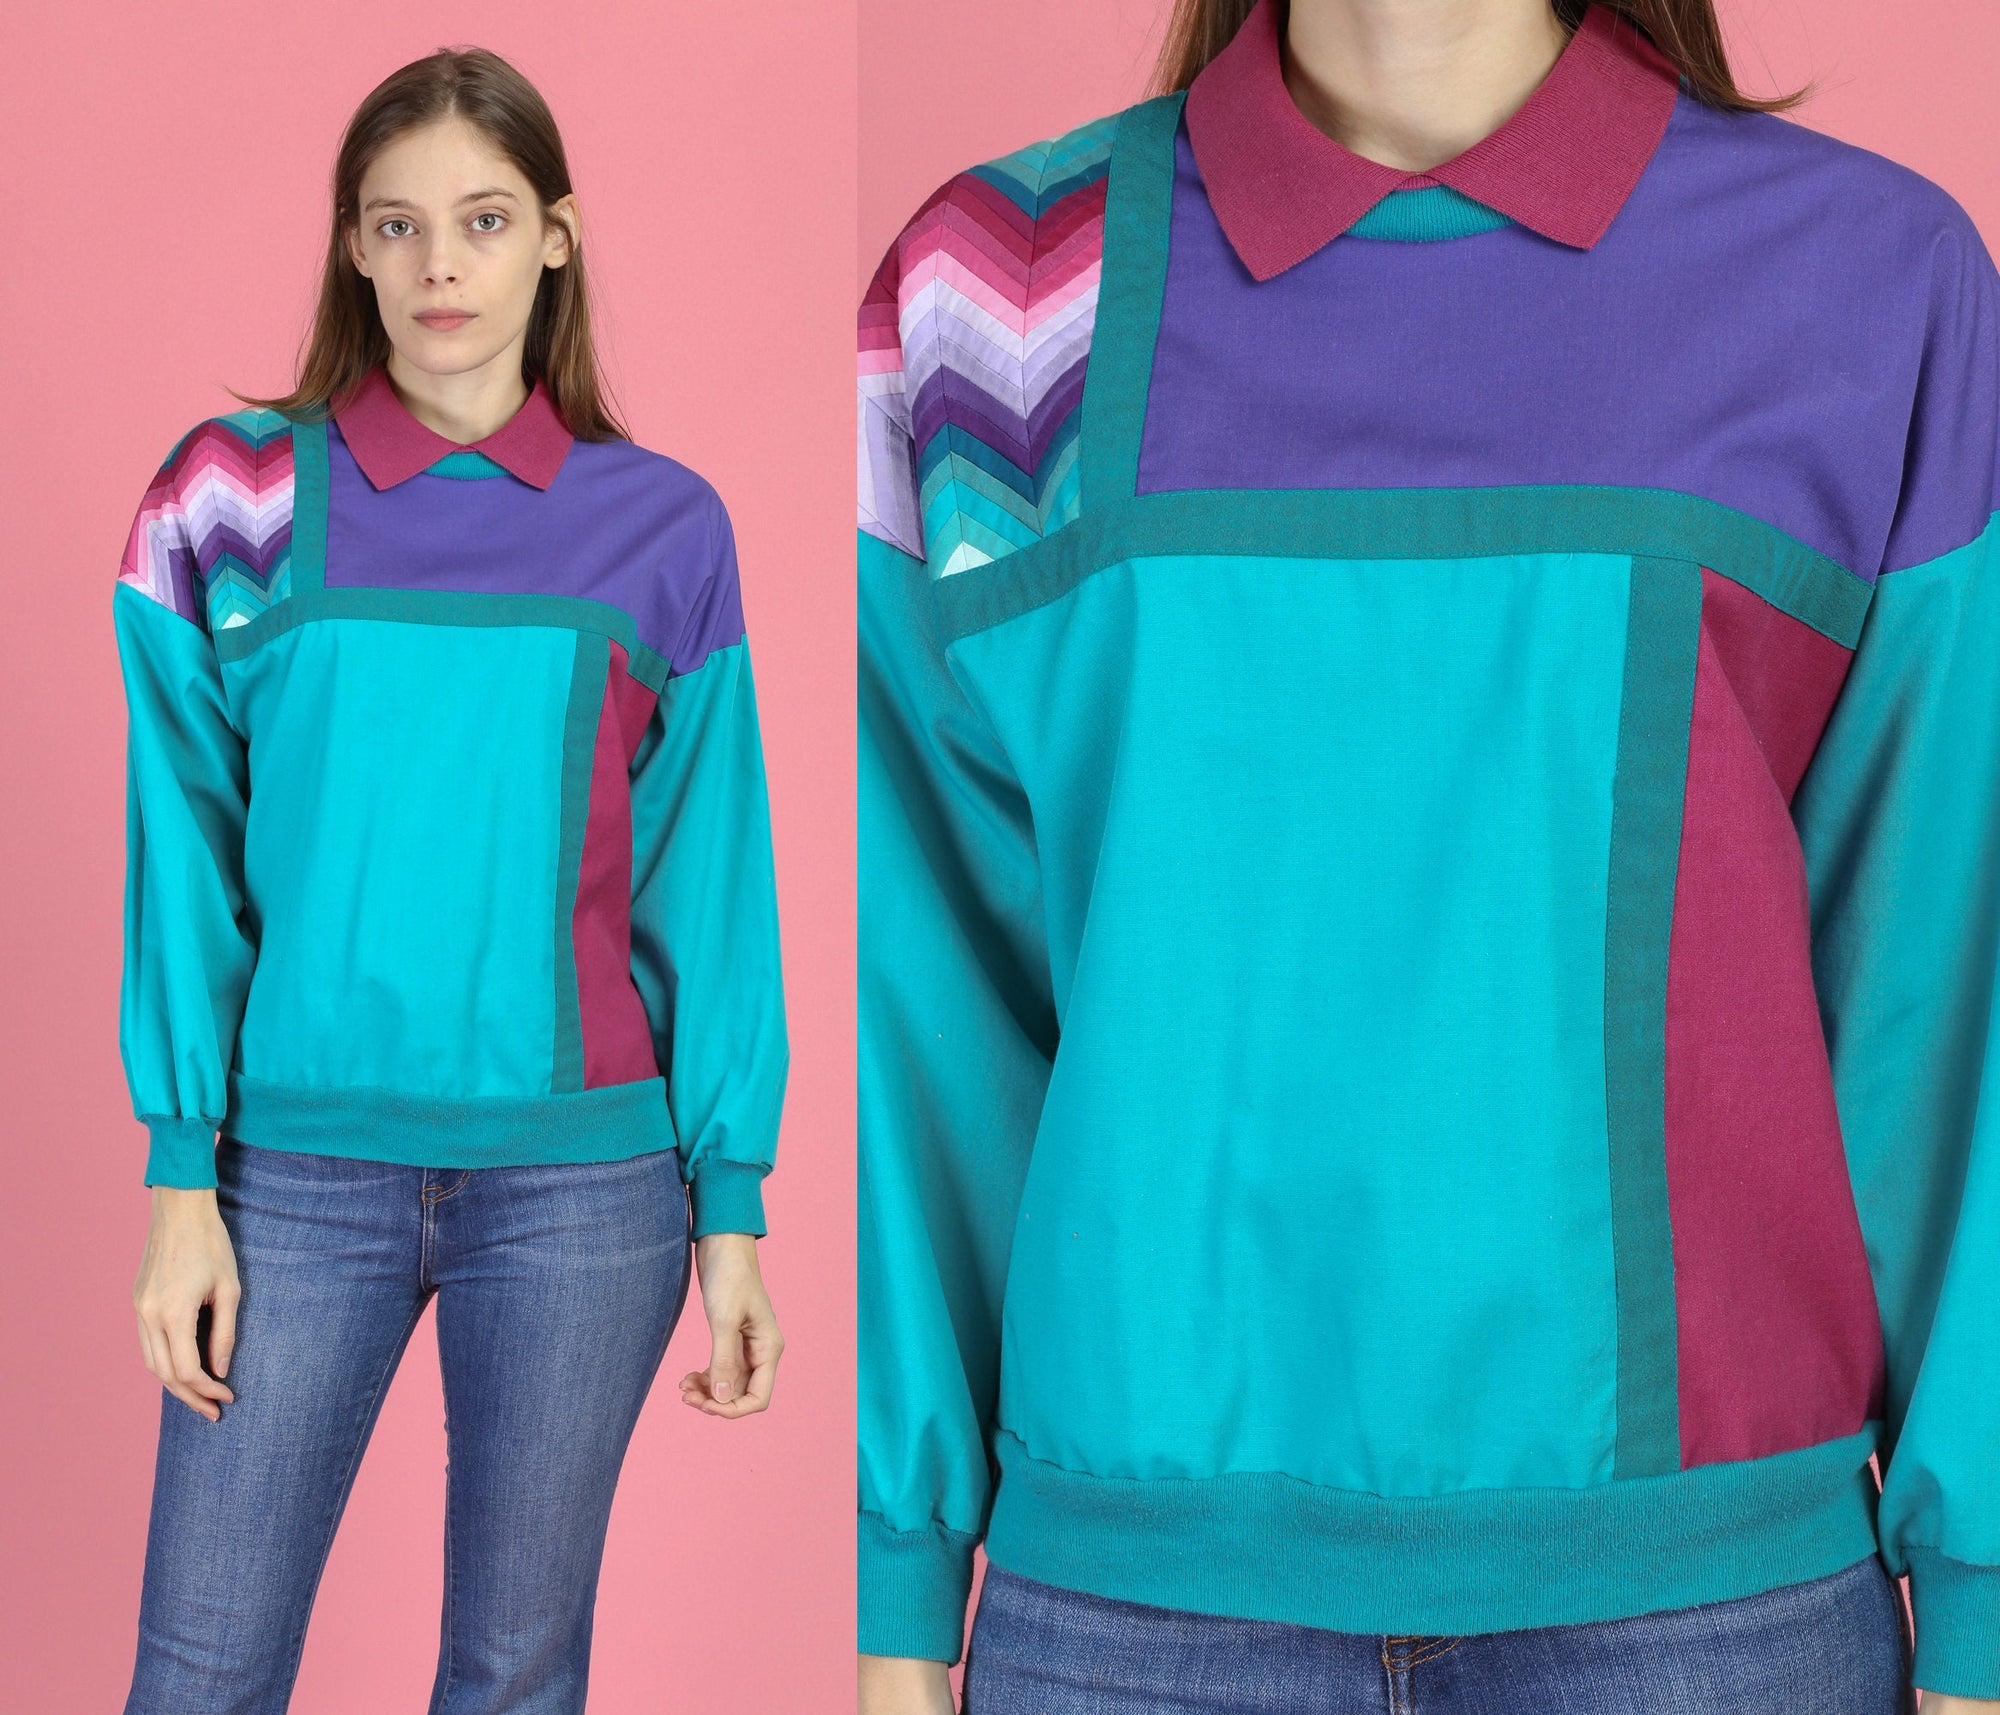 80s Color Block Long Sleeve Top - Medium to Large